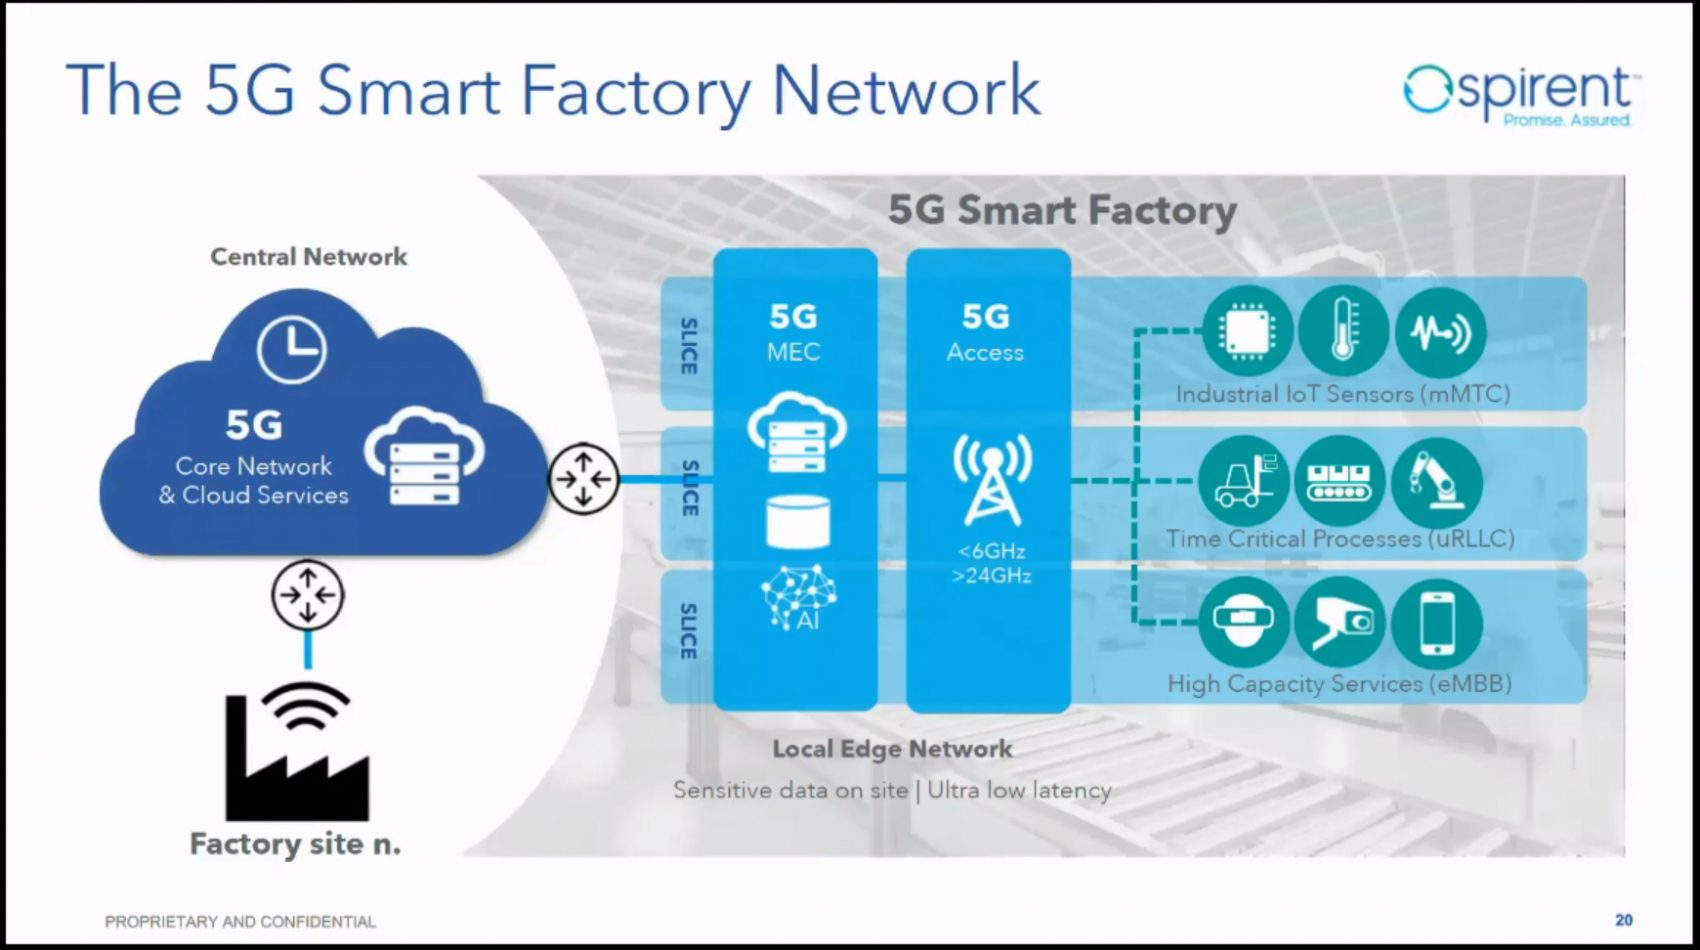 Delivering on the promise of Smart Industry through 5G networks